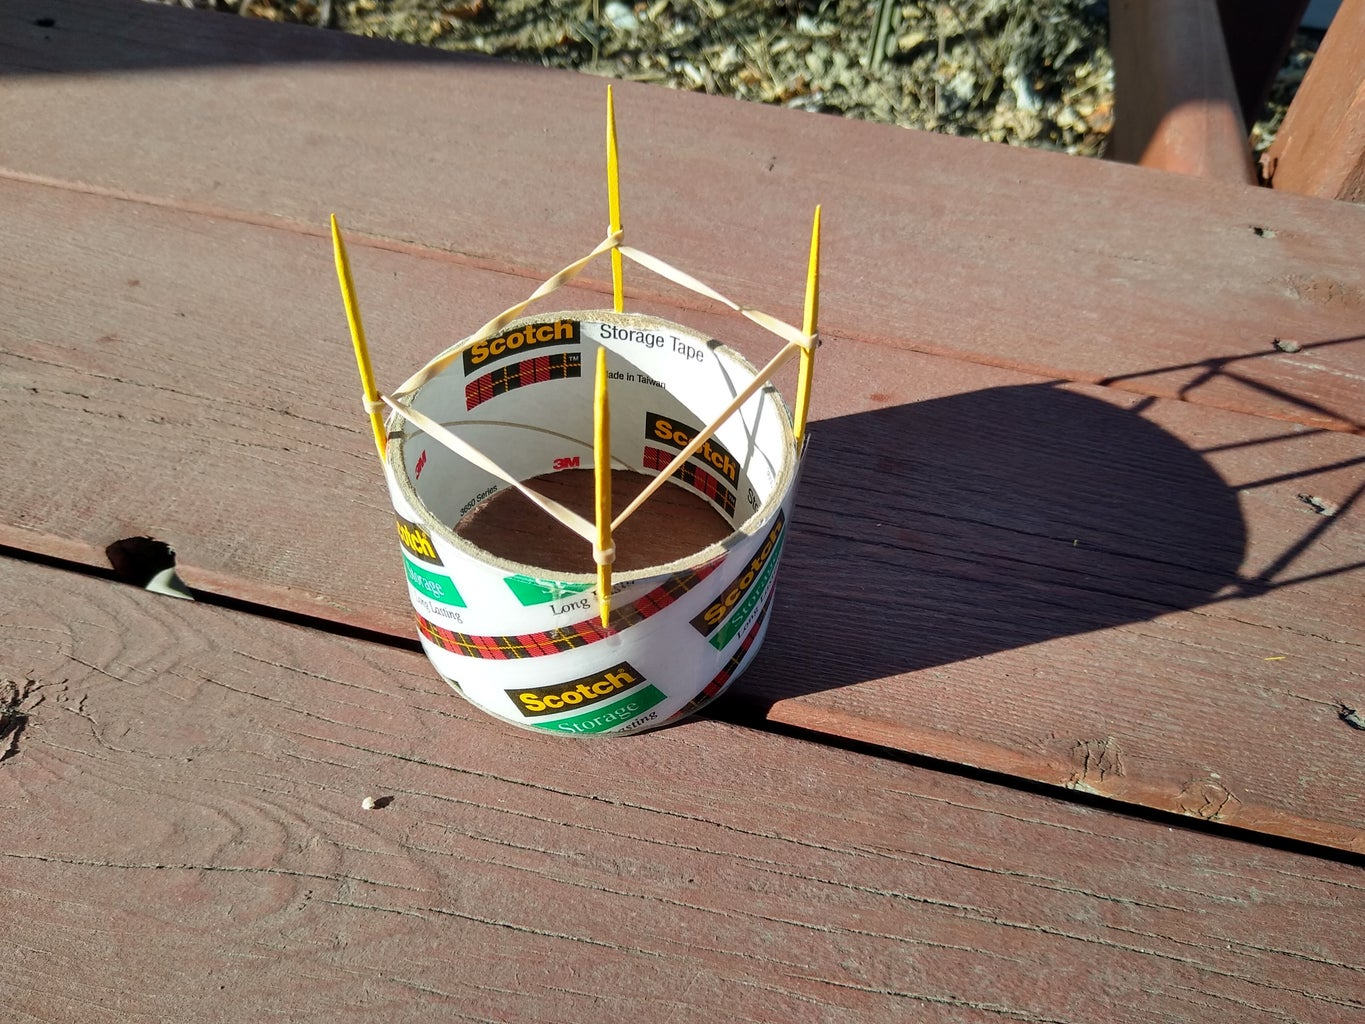 Stretch One Rubber Band Around All Four Posts. Then, Twist Each Corner of the Rubberband and Re-stretch It Around Each Post.